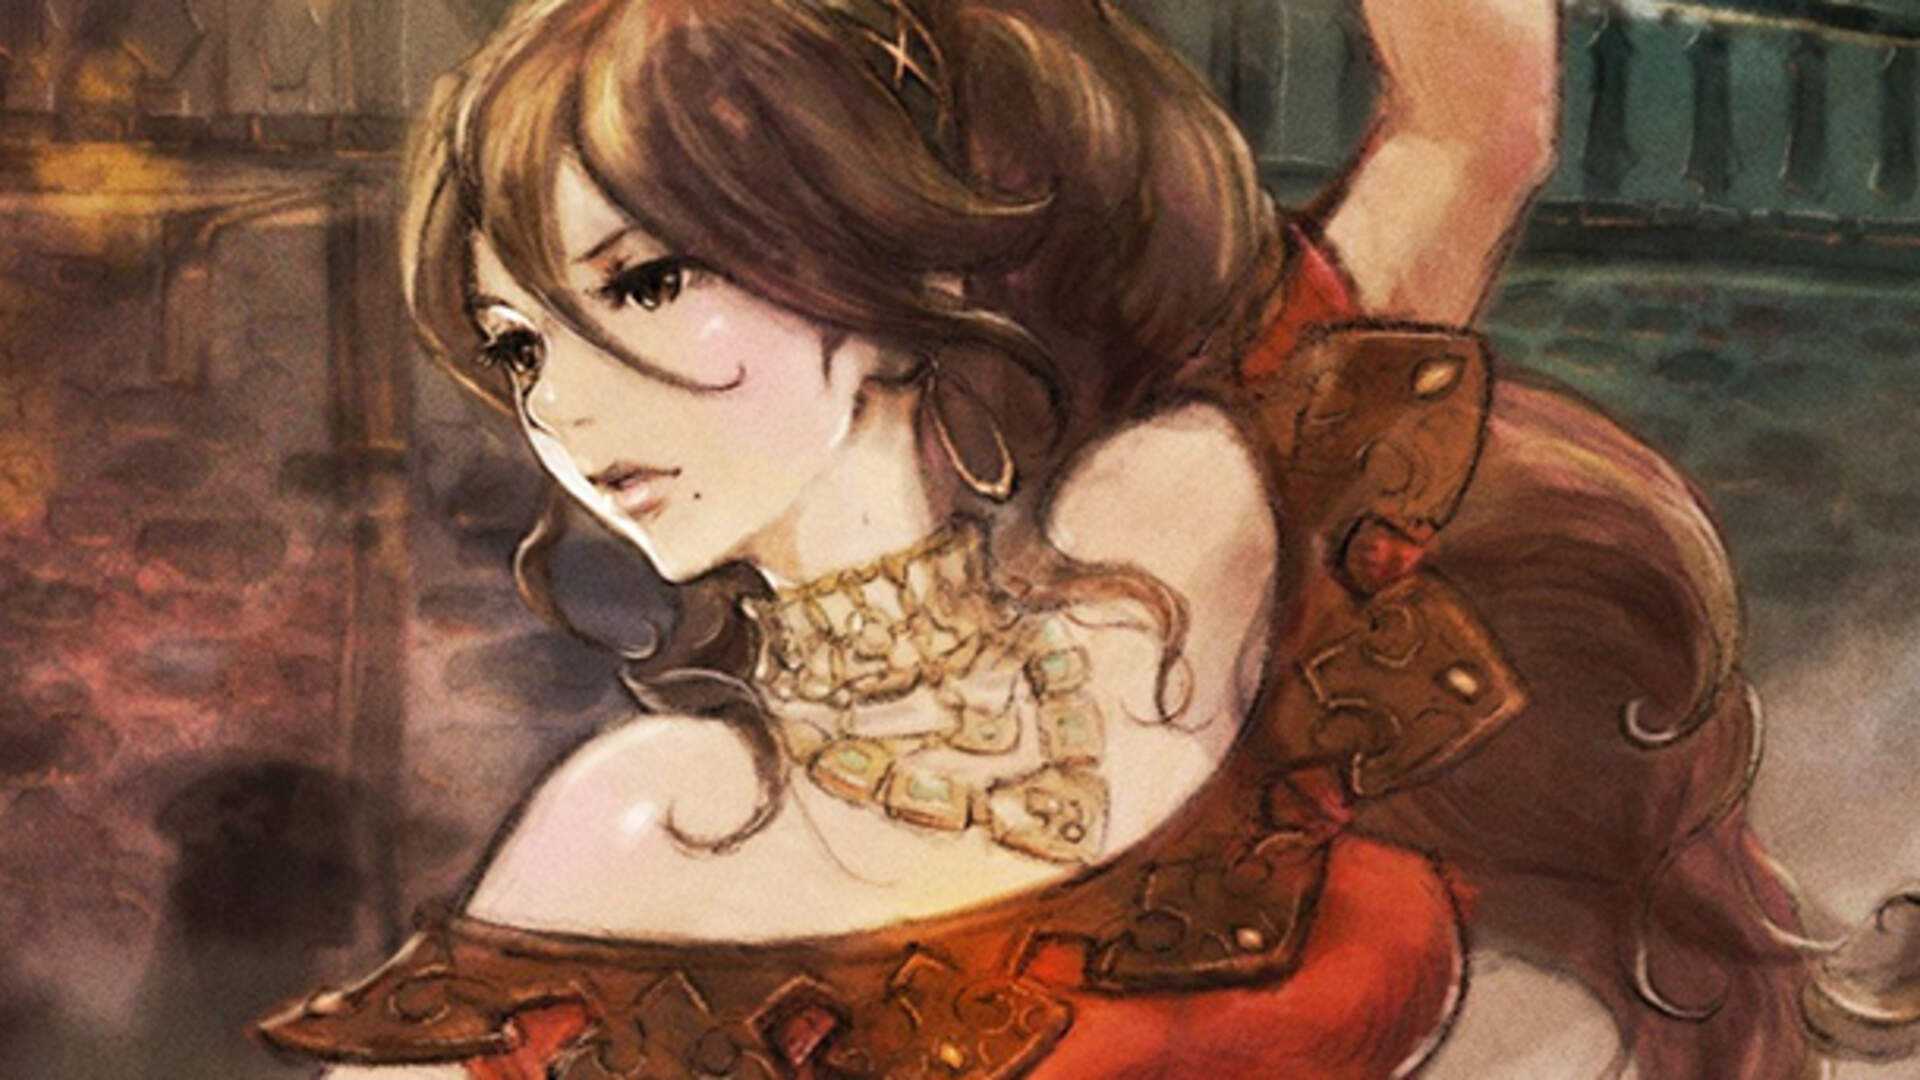 Octopath Traveler Passes 1 Million Sales Globally